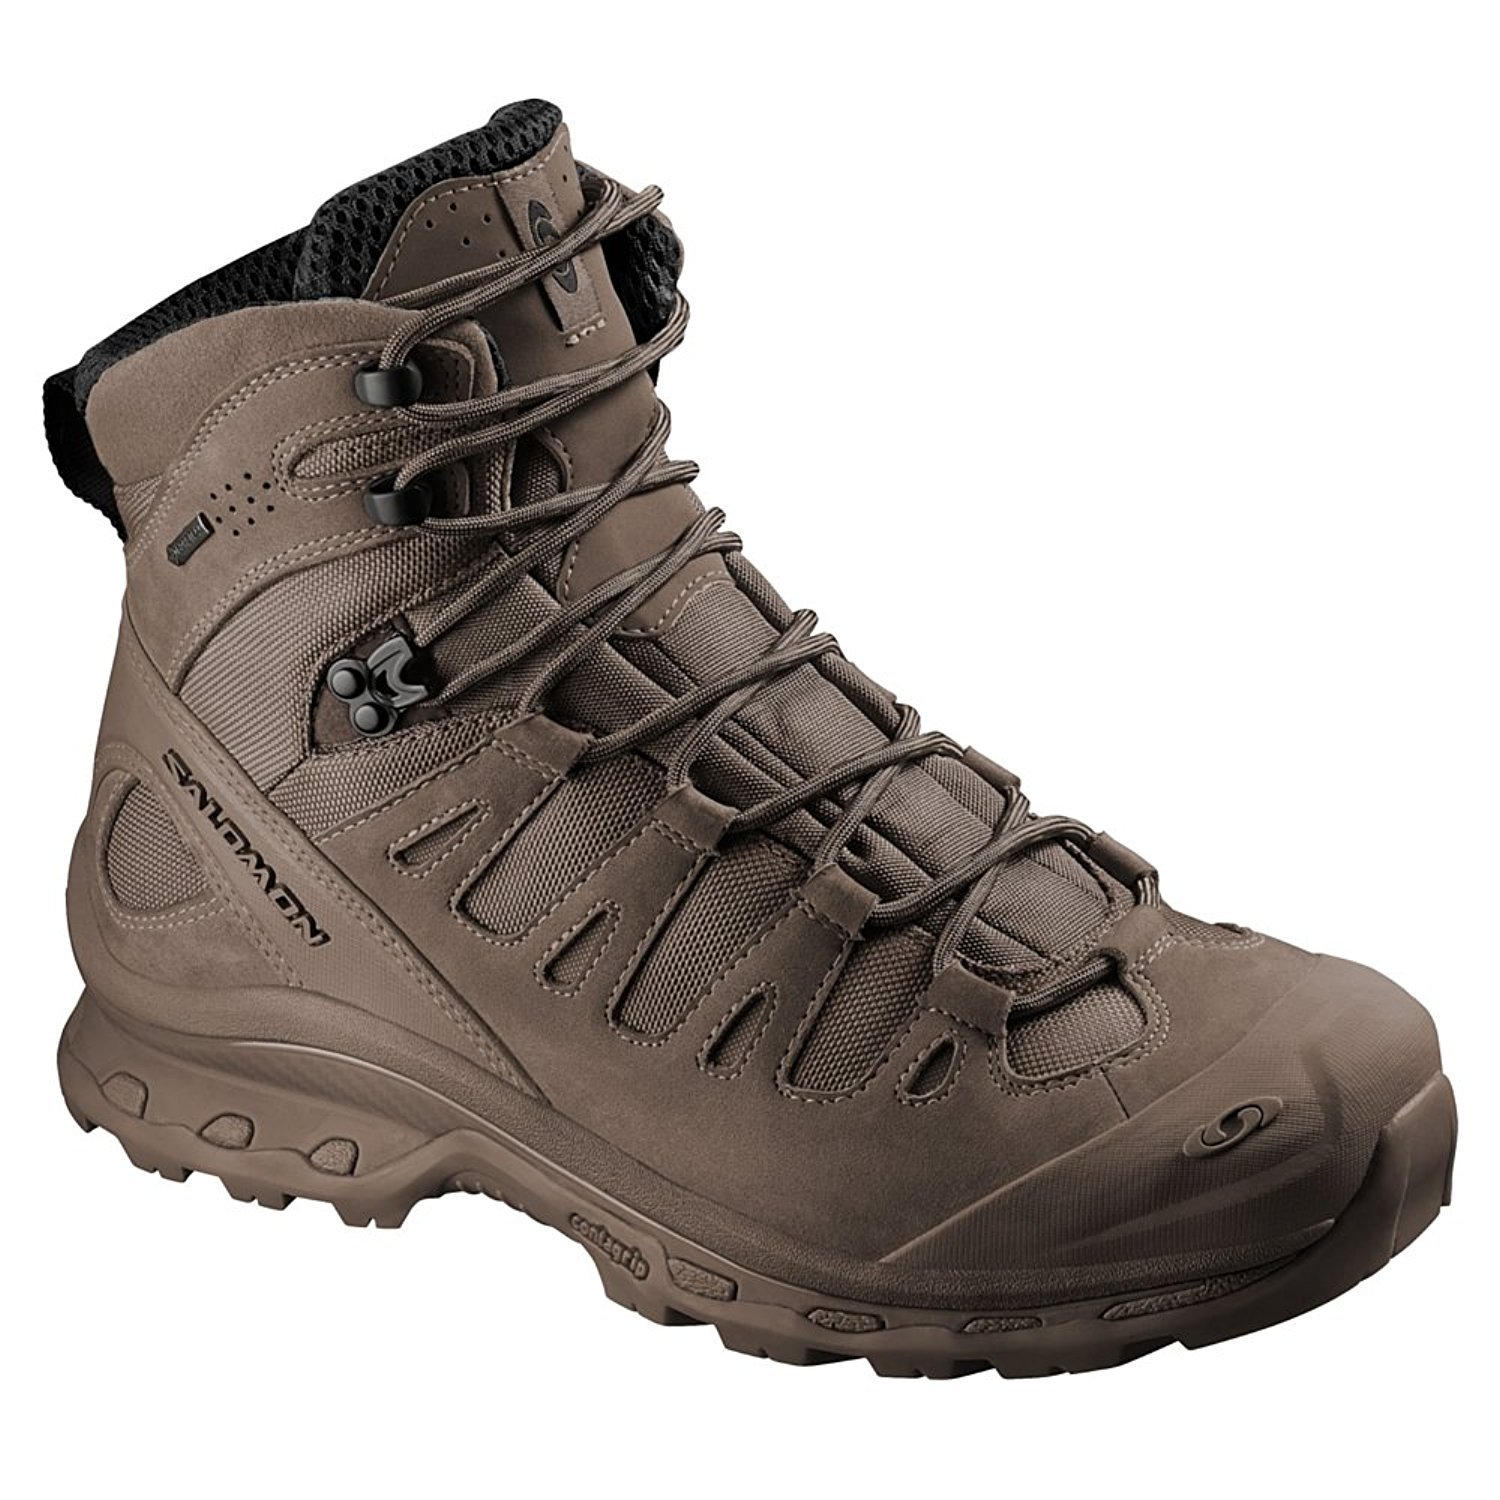 Salomon Forces Quest 4D GTX Burro B01CPVBL0E 7.5 D(M) US|Burro